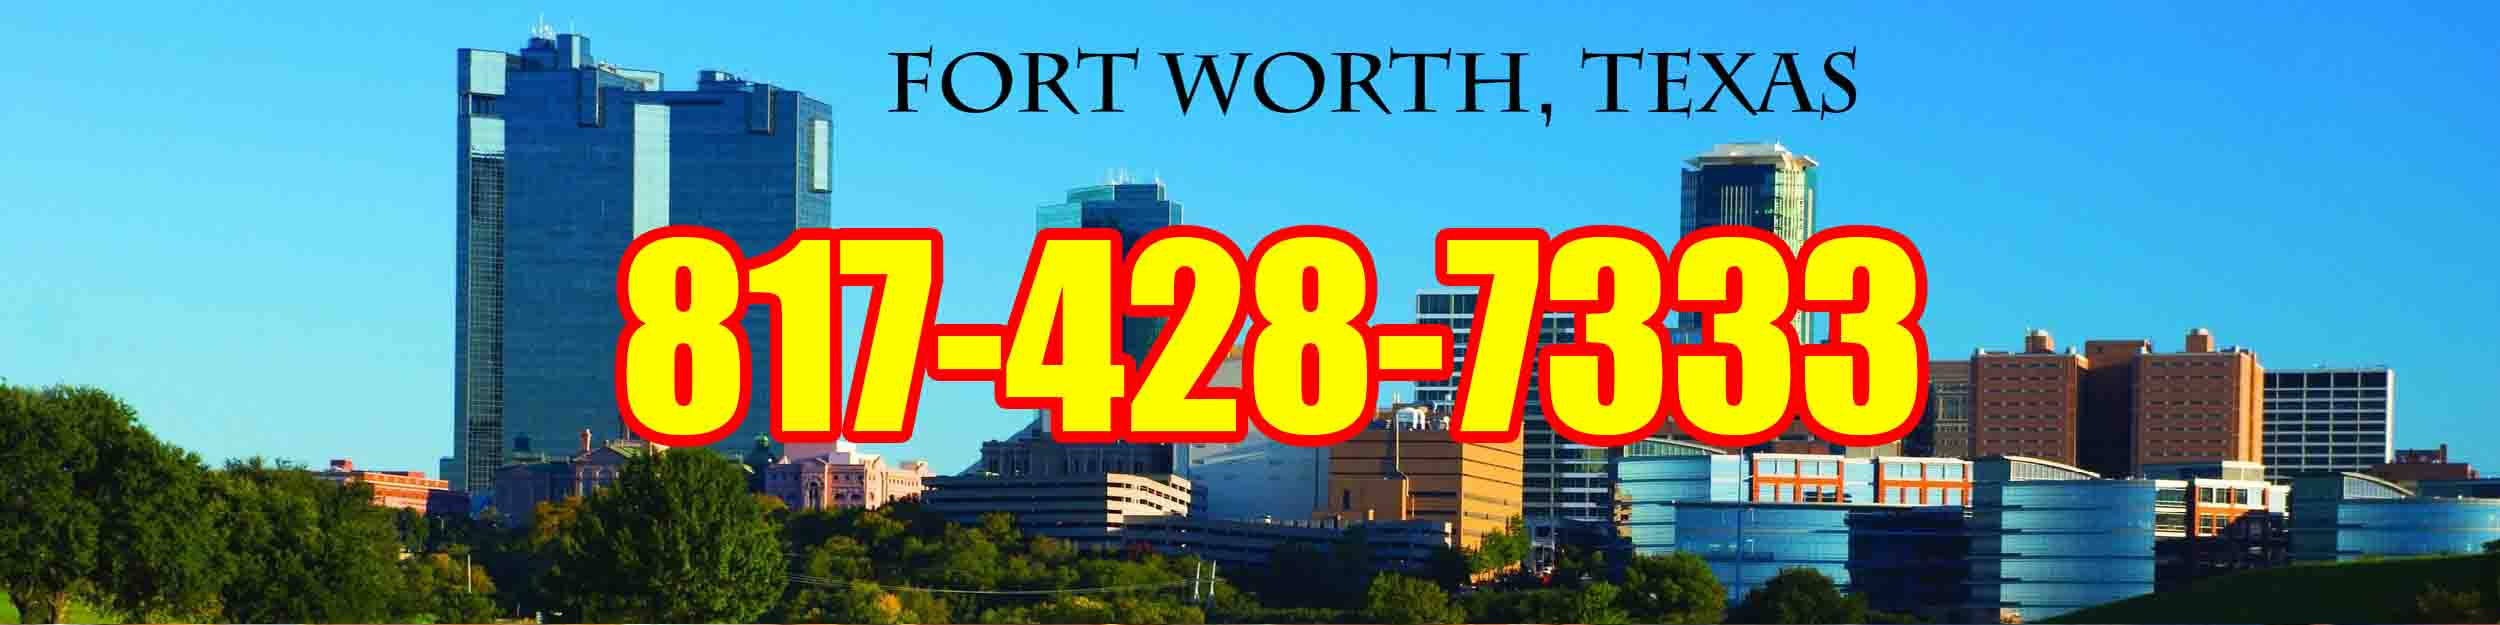 fort worth tx Header - Automotive Locksmiths in Fort Worth